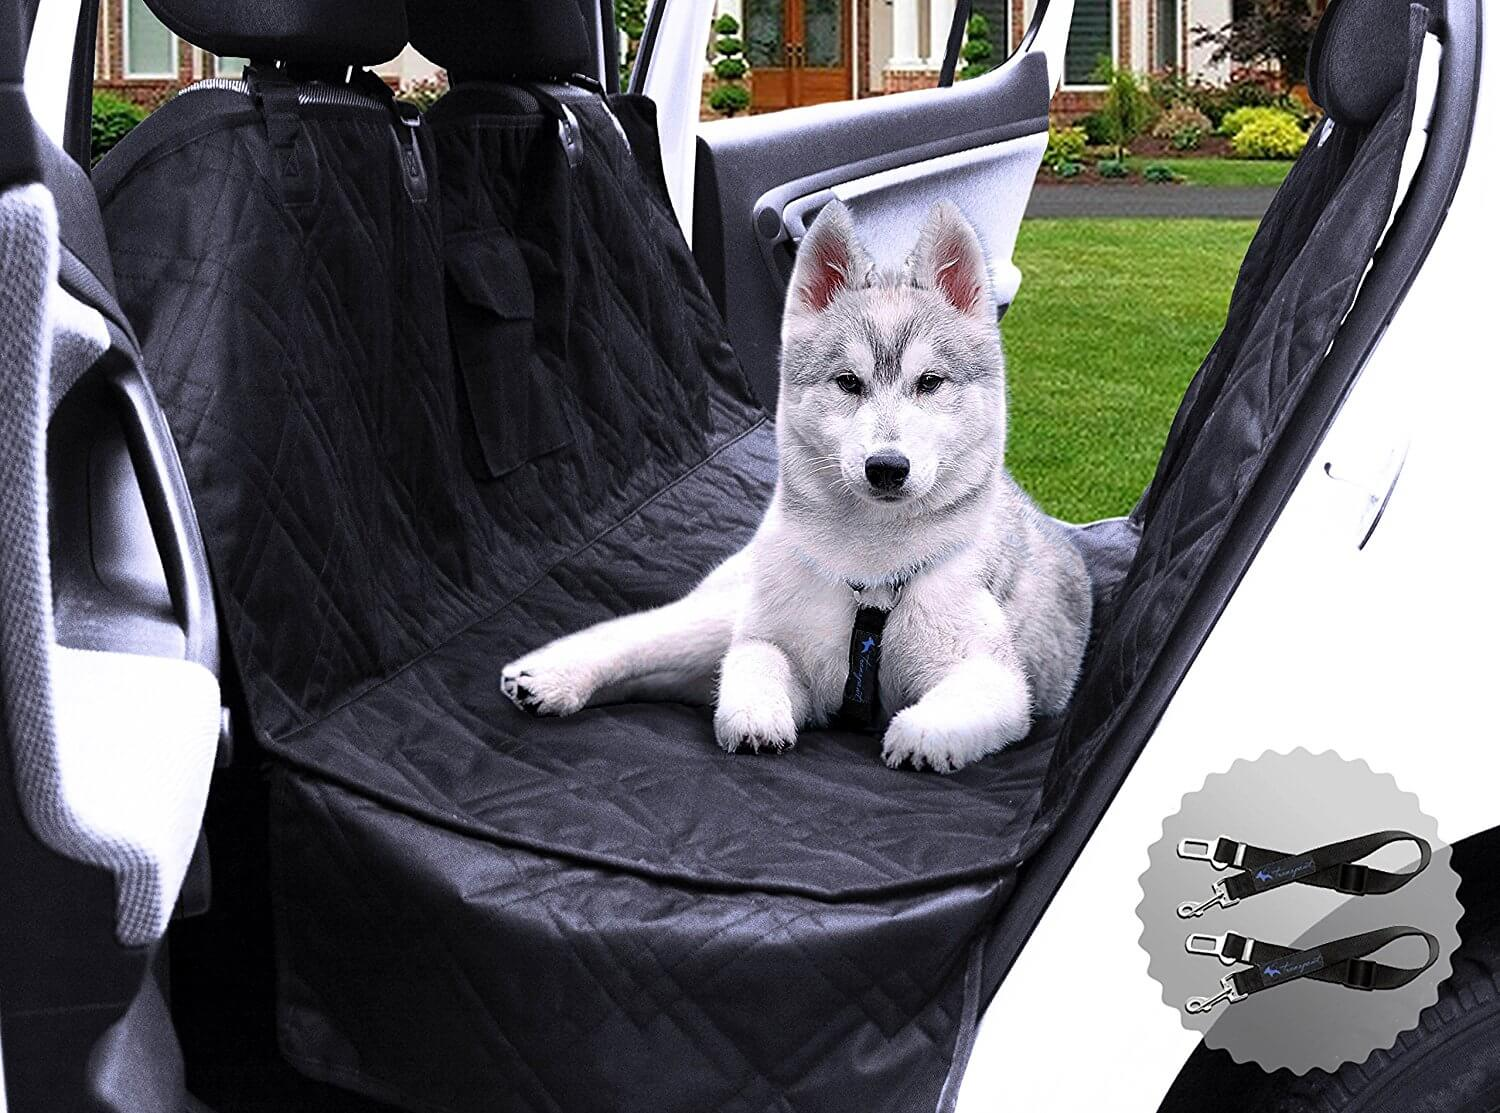 Best Seat Covers for Dog Hair: Take a Car Ride with Your Companion